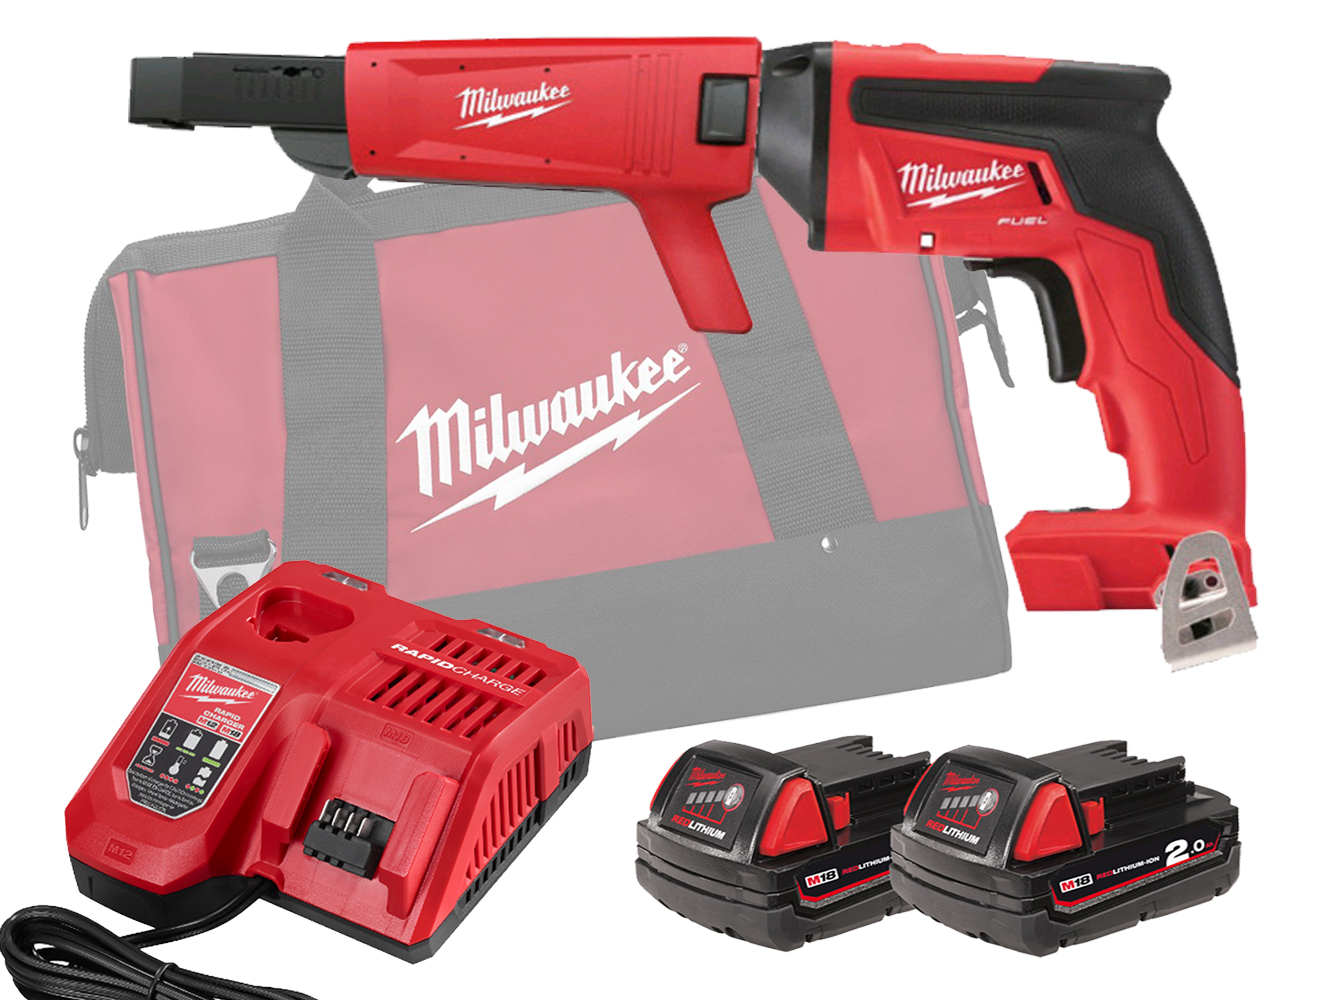 Milwaukee M18FSGC 18V Fuel Screw Gun With Collated Attachment - 2.0Ah Pack